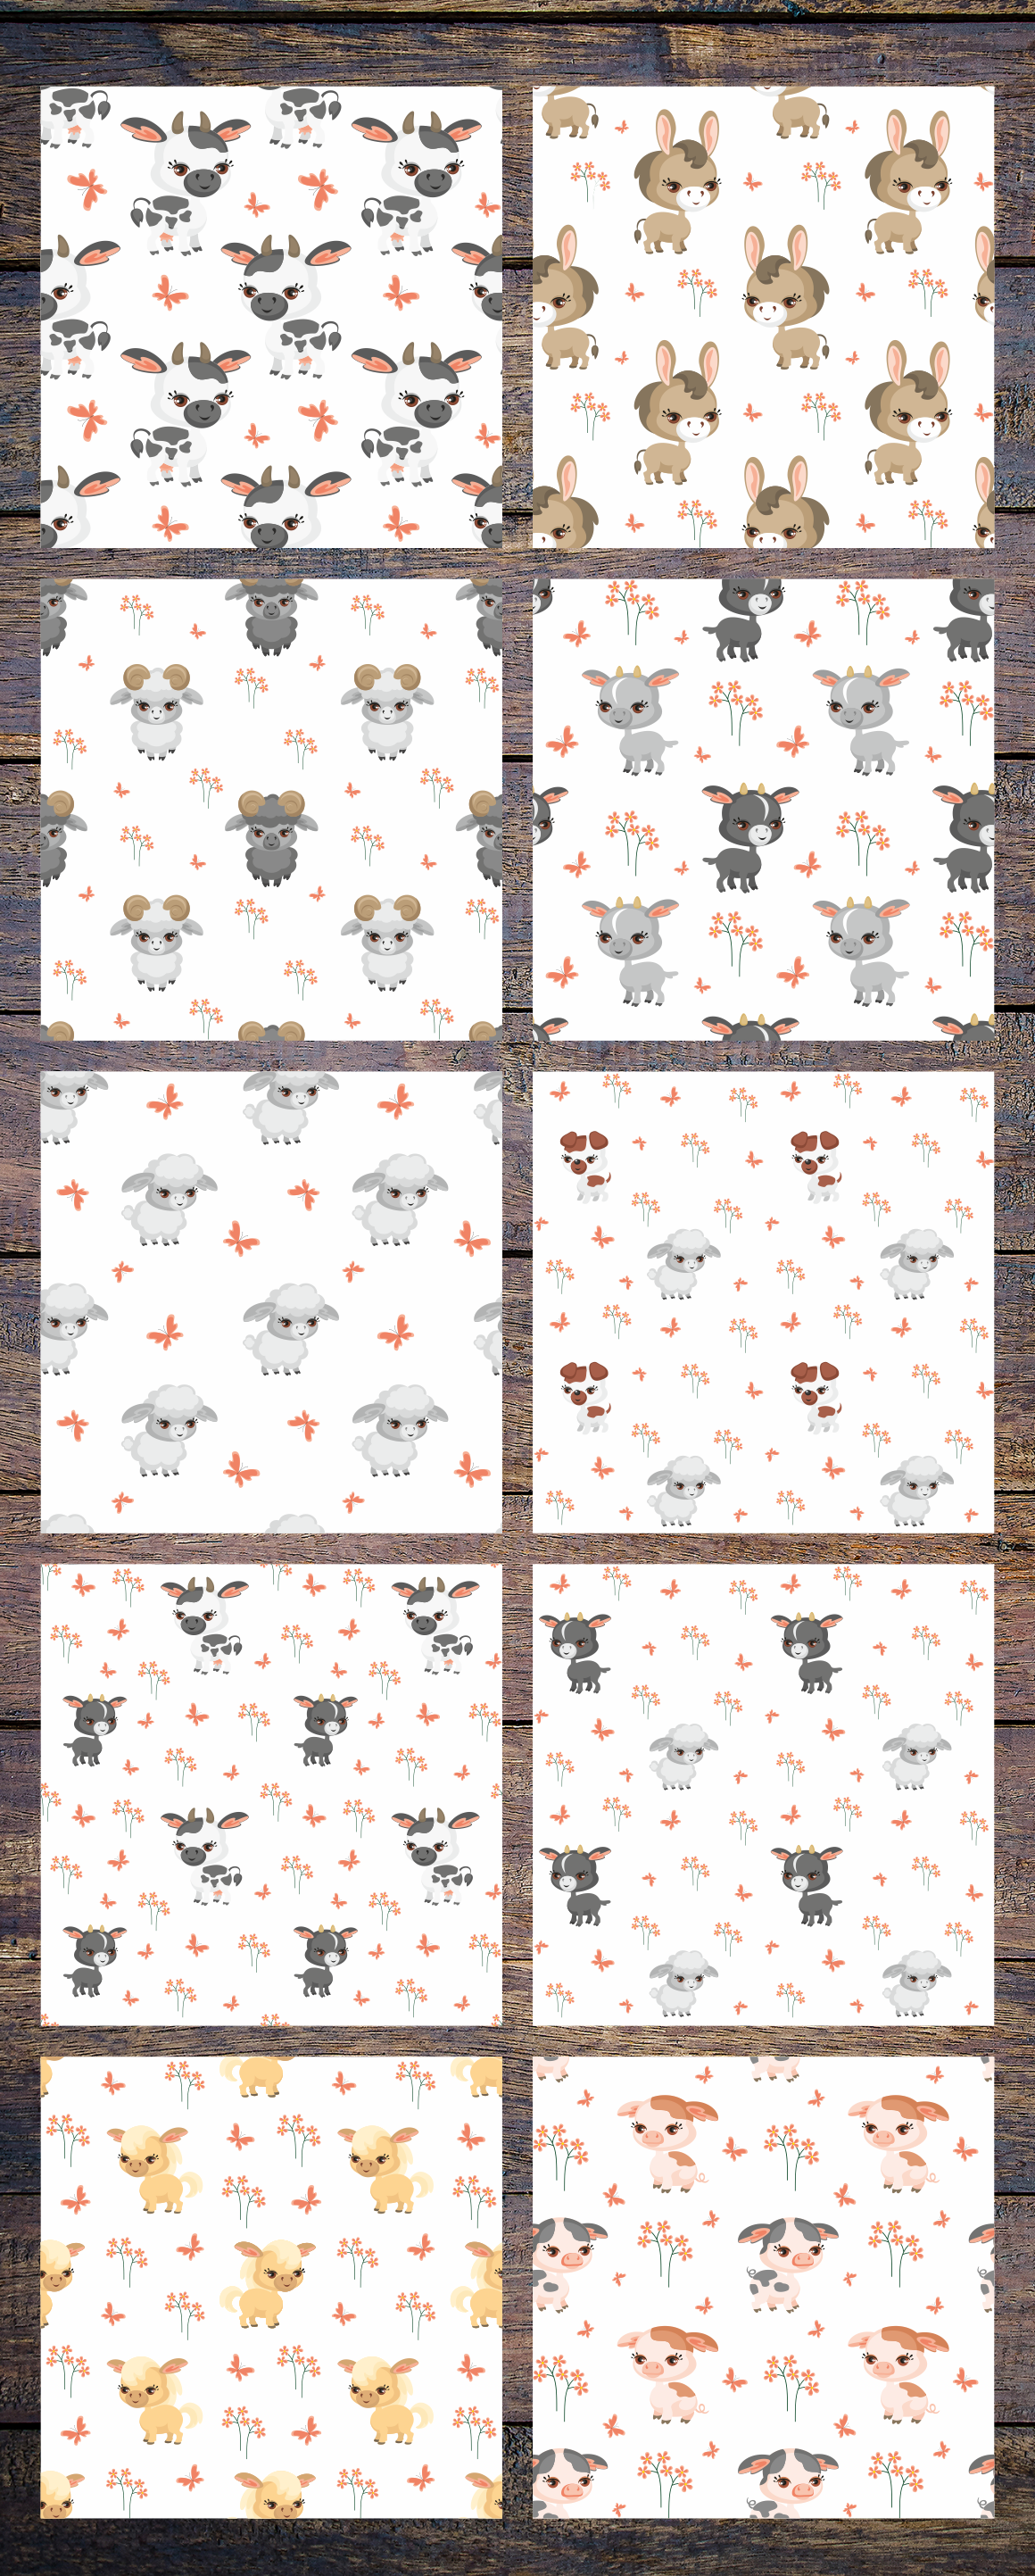 Print on Demand: Farm Animals Seamless Patterns Graphic Patterns By Olga Belova - Image 2